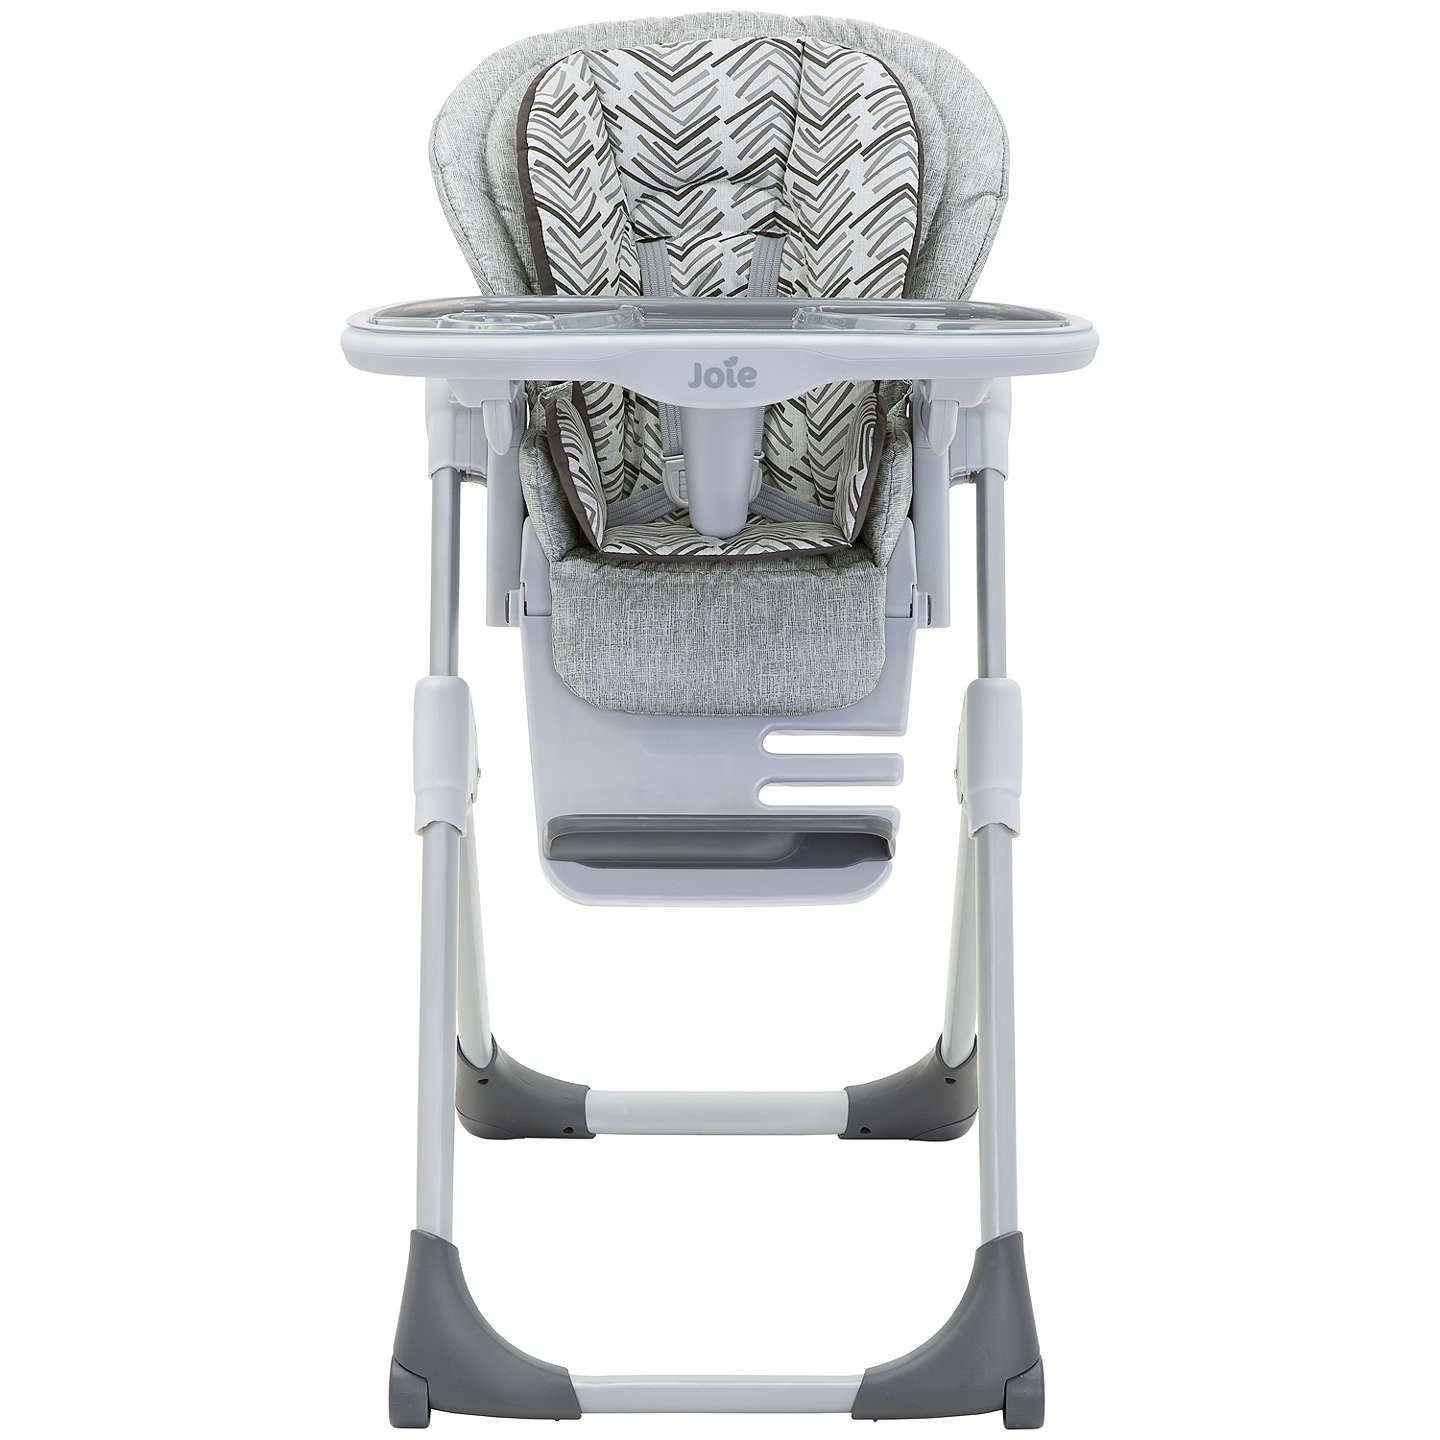 Joie Baby Mimzy 2 in 1 Highchair, Abstract Arrow Joie